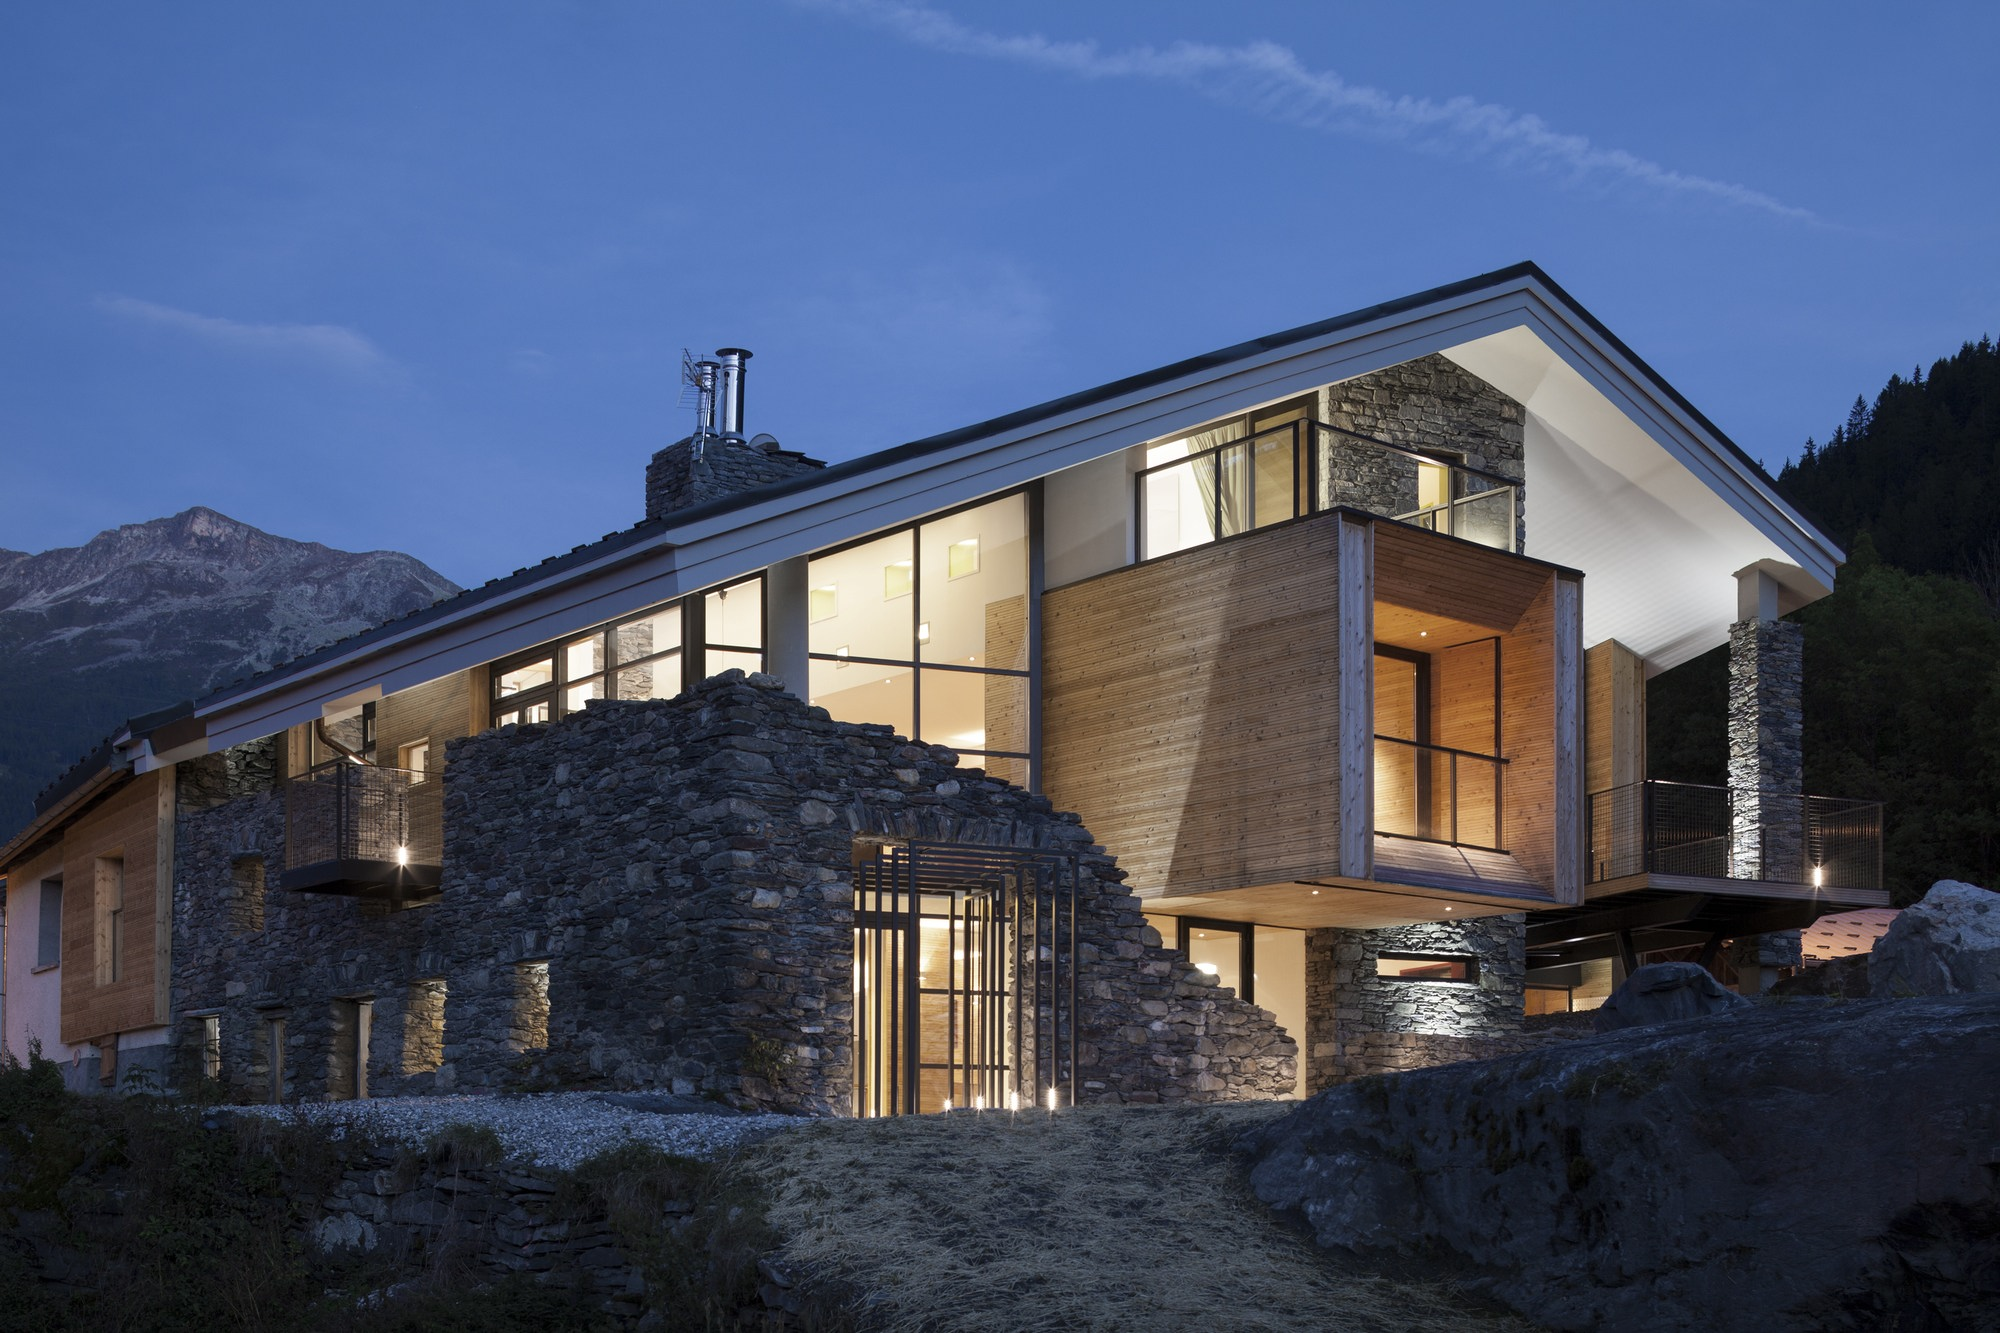 Mineral lodge by atelier d architecture christian girard for Mountain house lodge